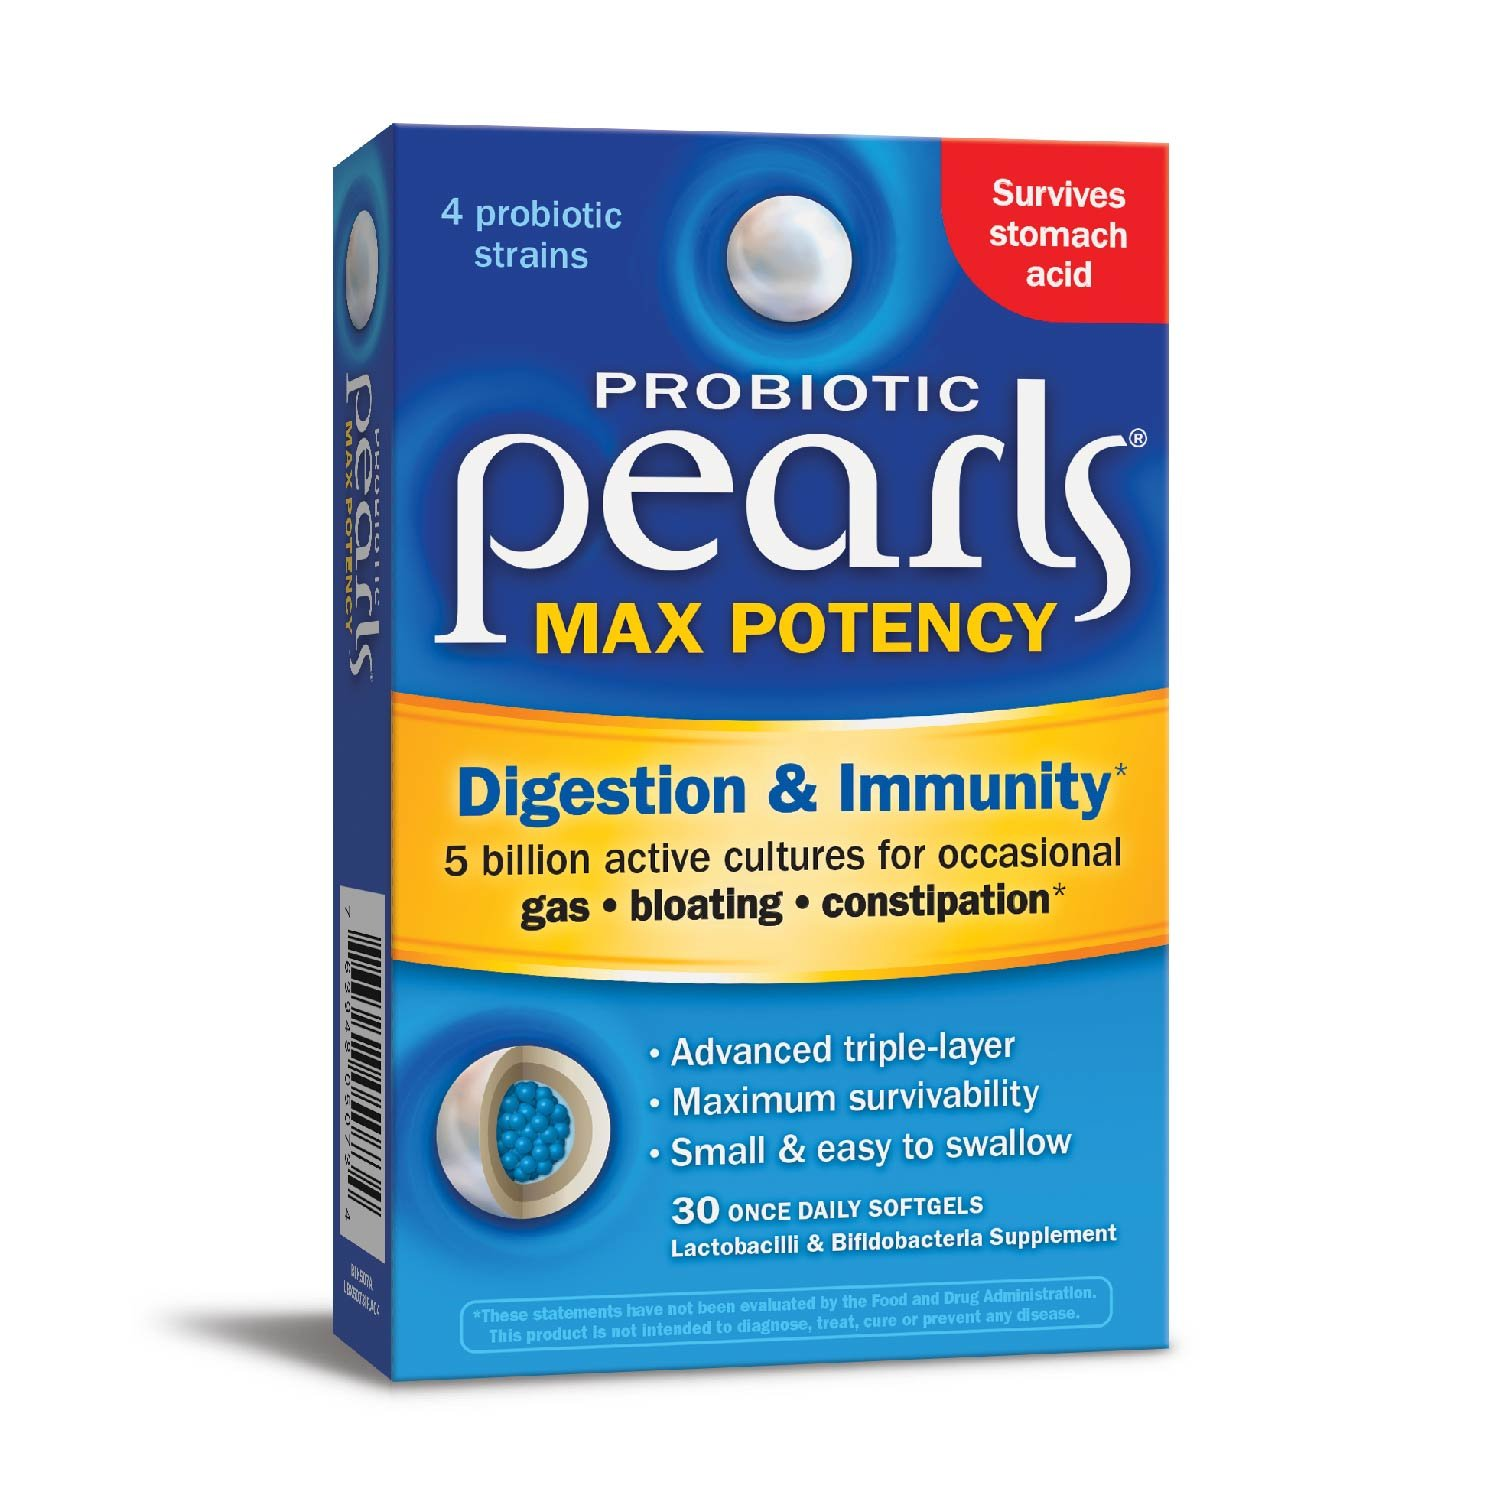 Enzymatic Probiotic Pearls Max Potency 5 Billion Active Cultures with Advanced Triple-Layer, 30 Count